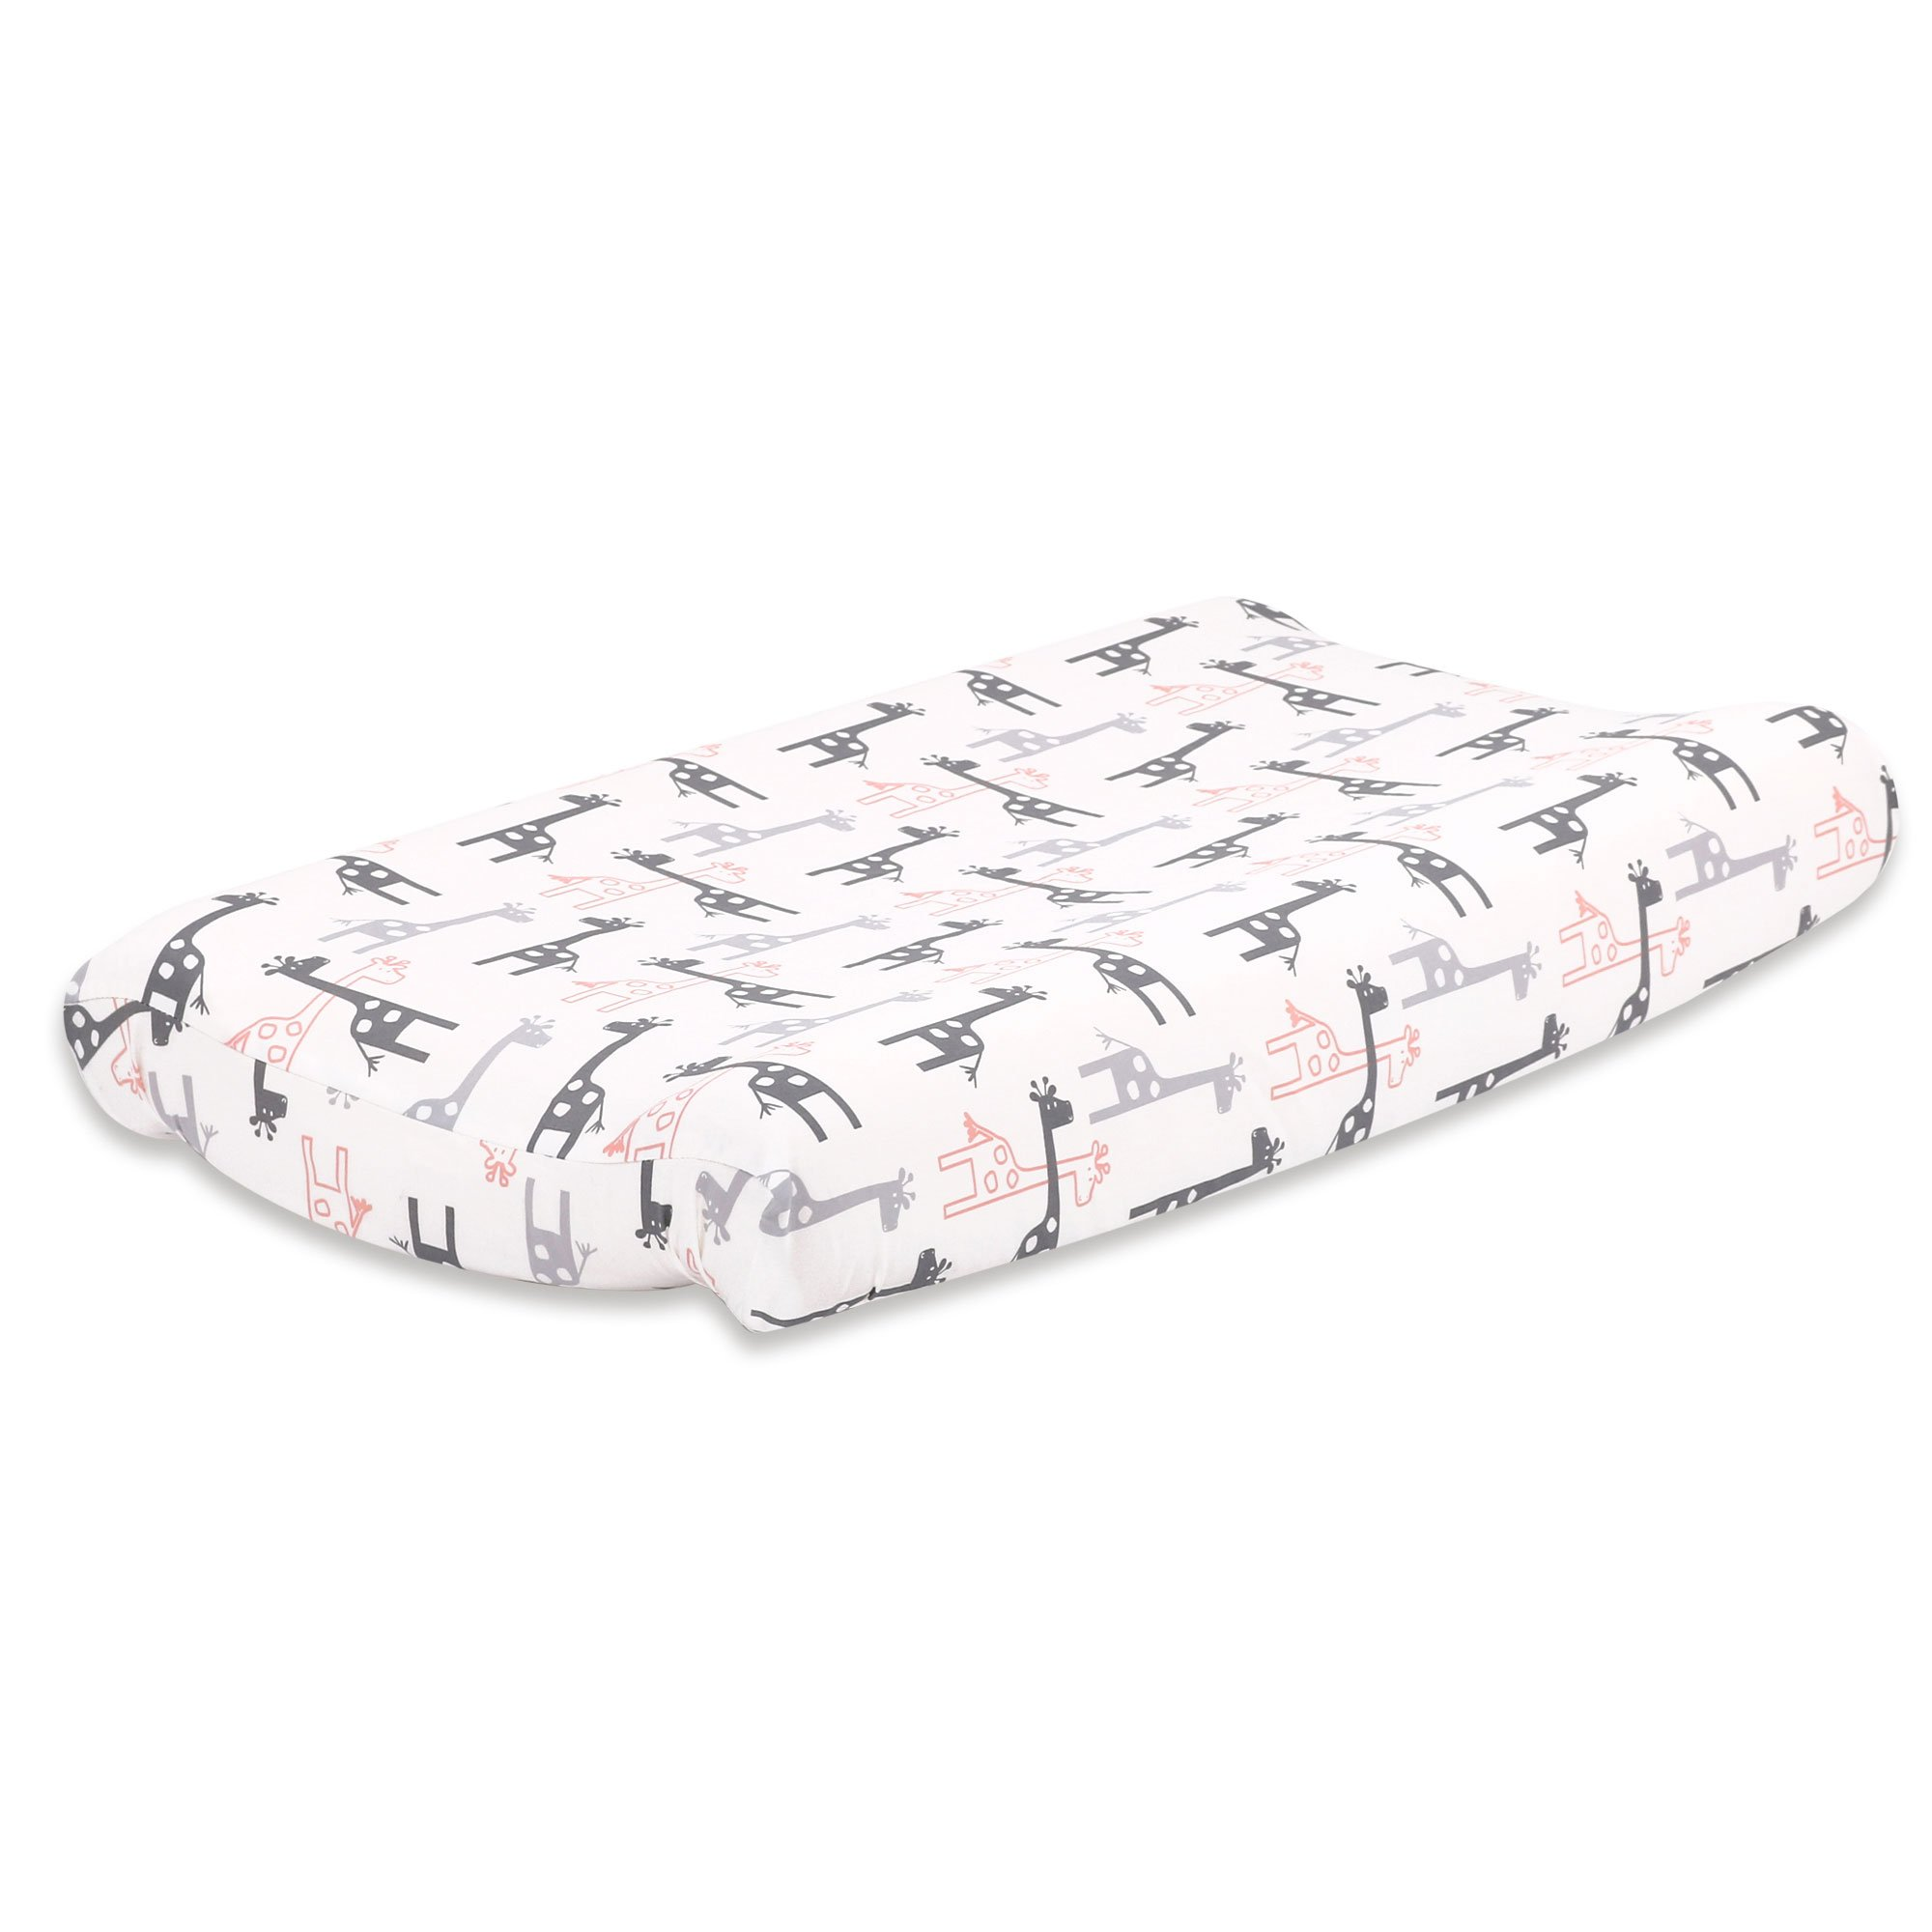 Uptown Girl Peach and Grey Giraffe Baby Changing Pad Cover by The Peanut Shell